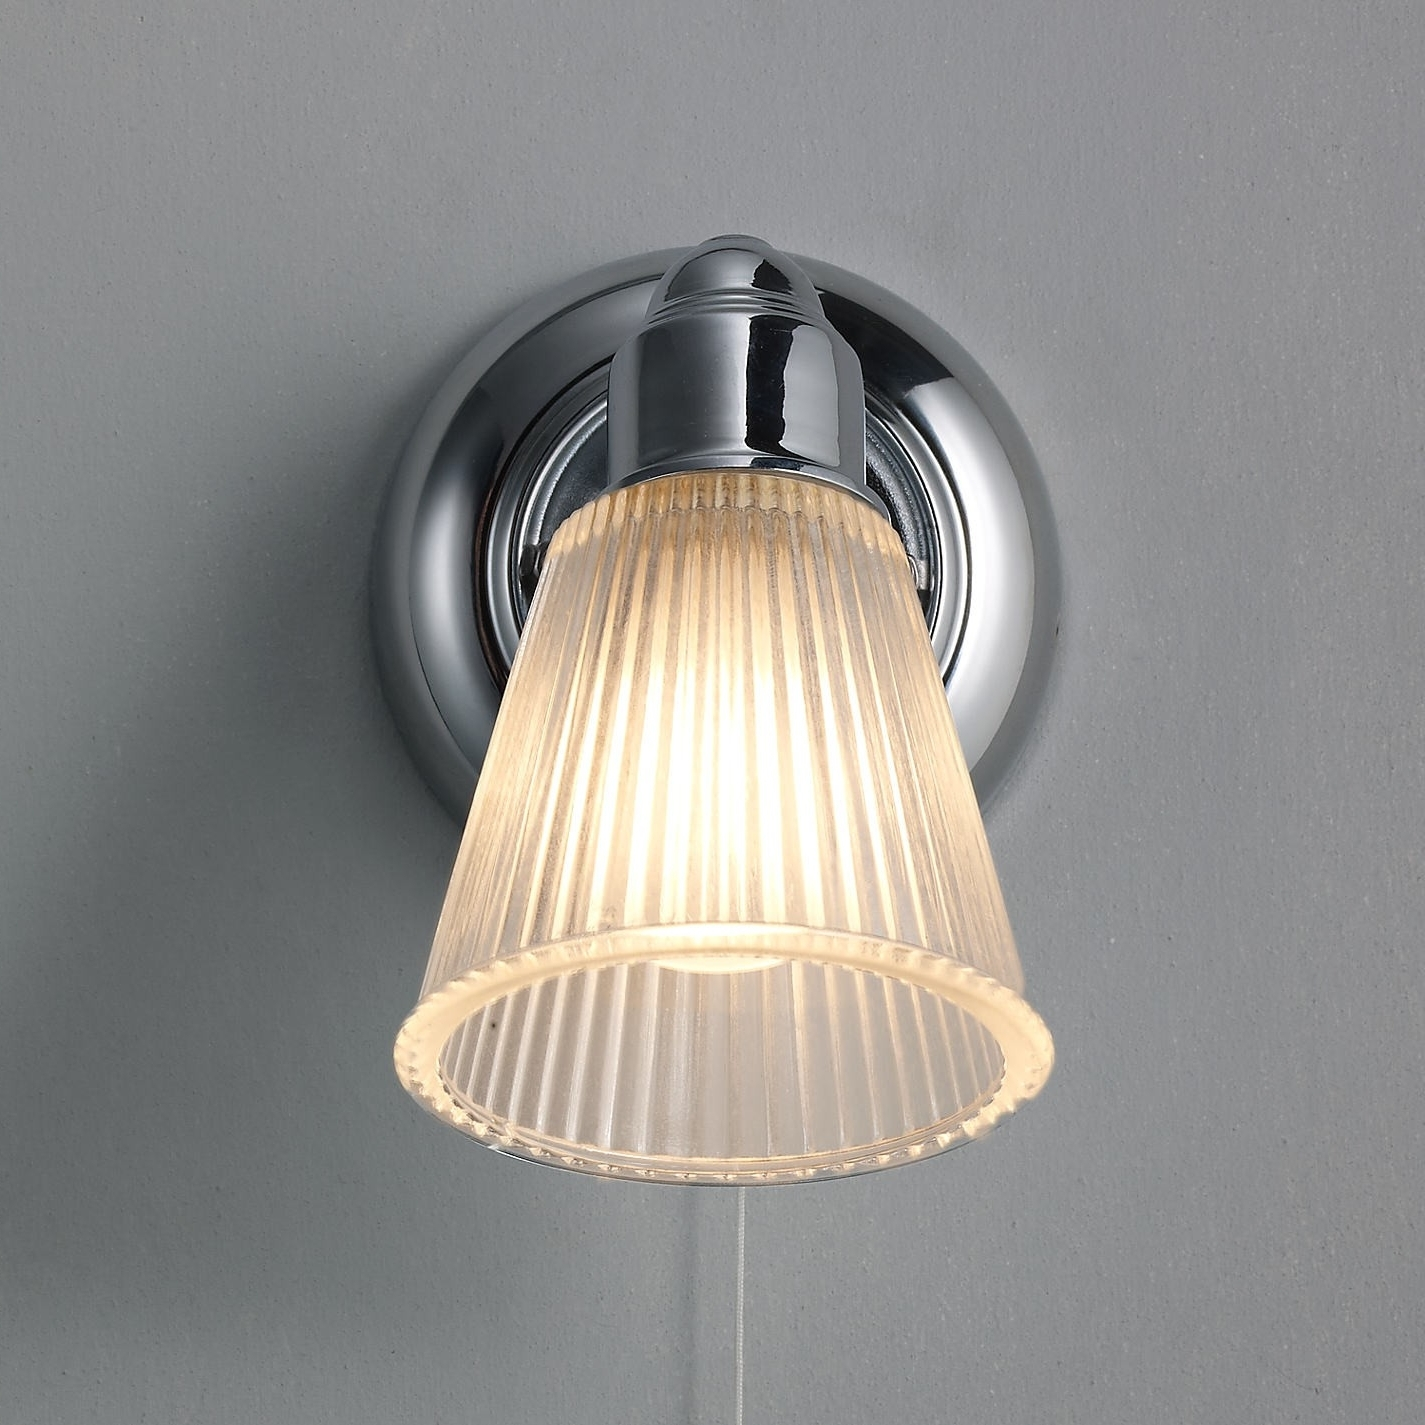 Trendy Awesome Bathroom Wall Lights John Lewis – Dkbzaweb Pertaining To Outdoor Wall Lights At John Lewis (View 10 of 20)